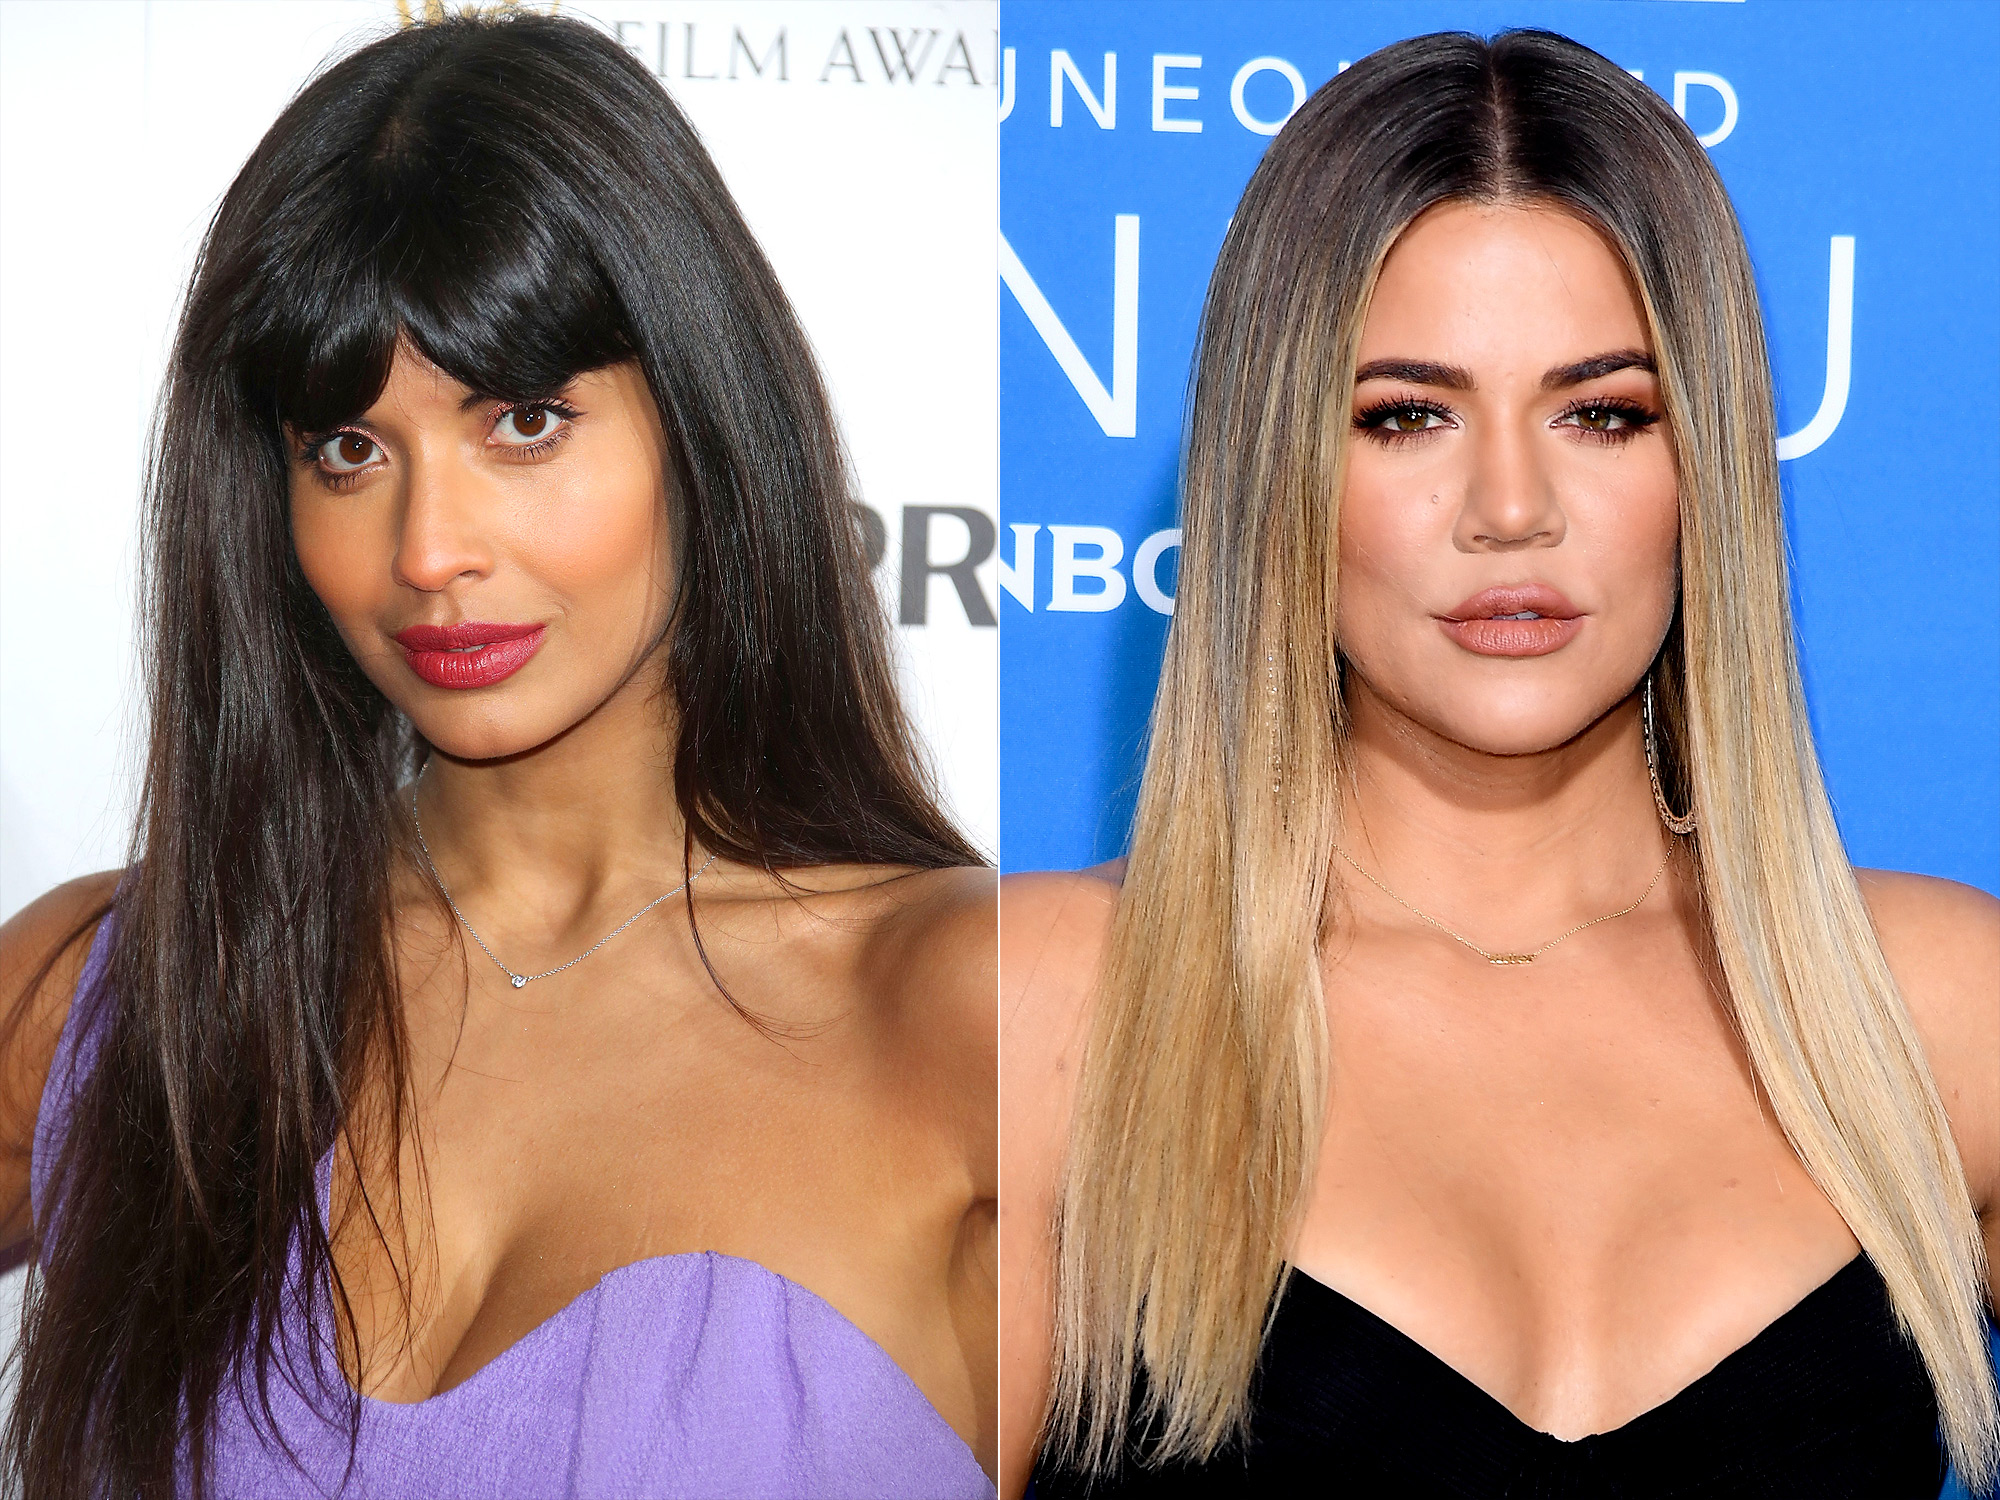 khloe-kardashian-deletes-weightloss-shake-ad-and-jameela-jamil-praises-the-kuwk-star